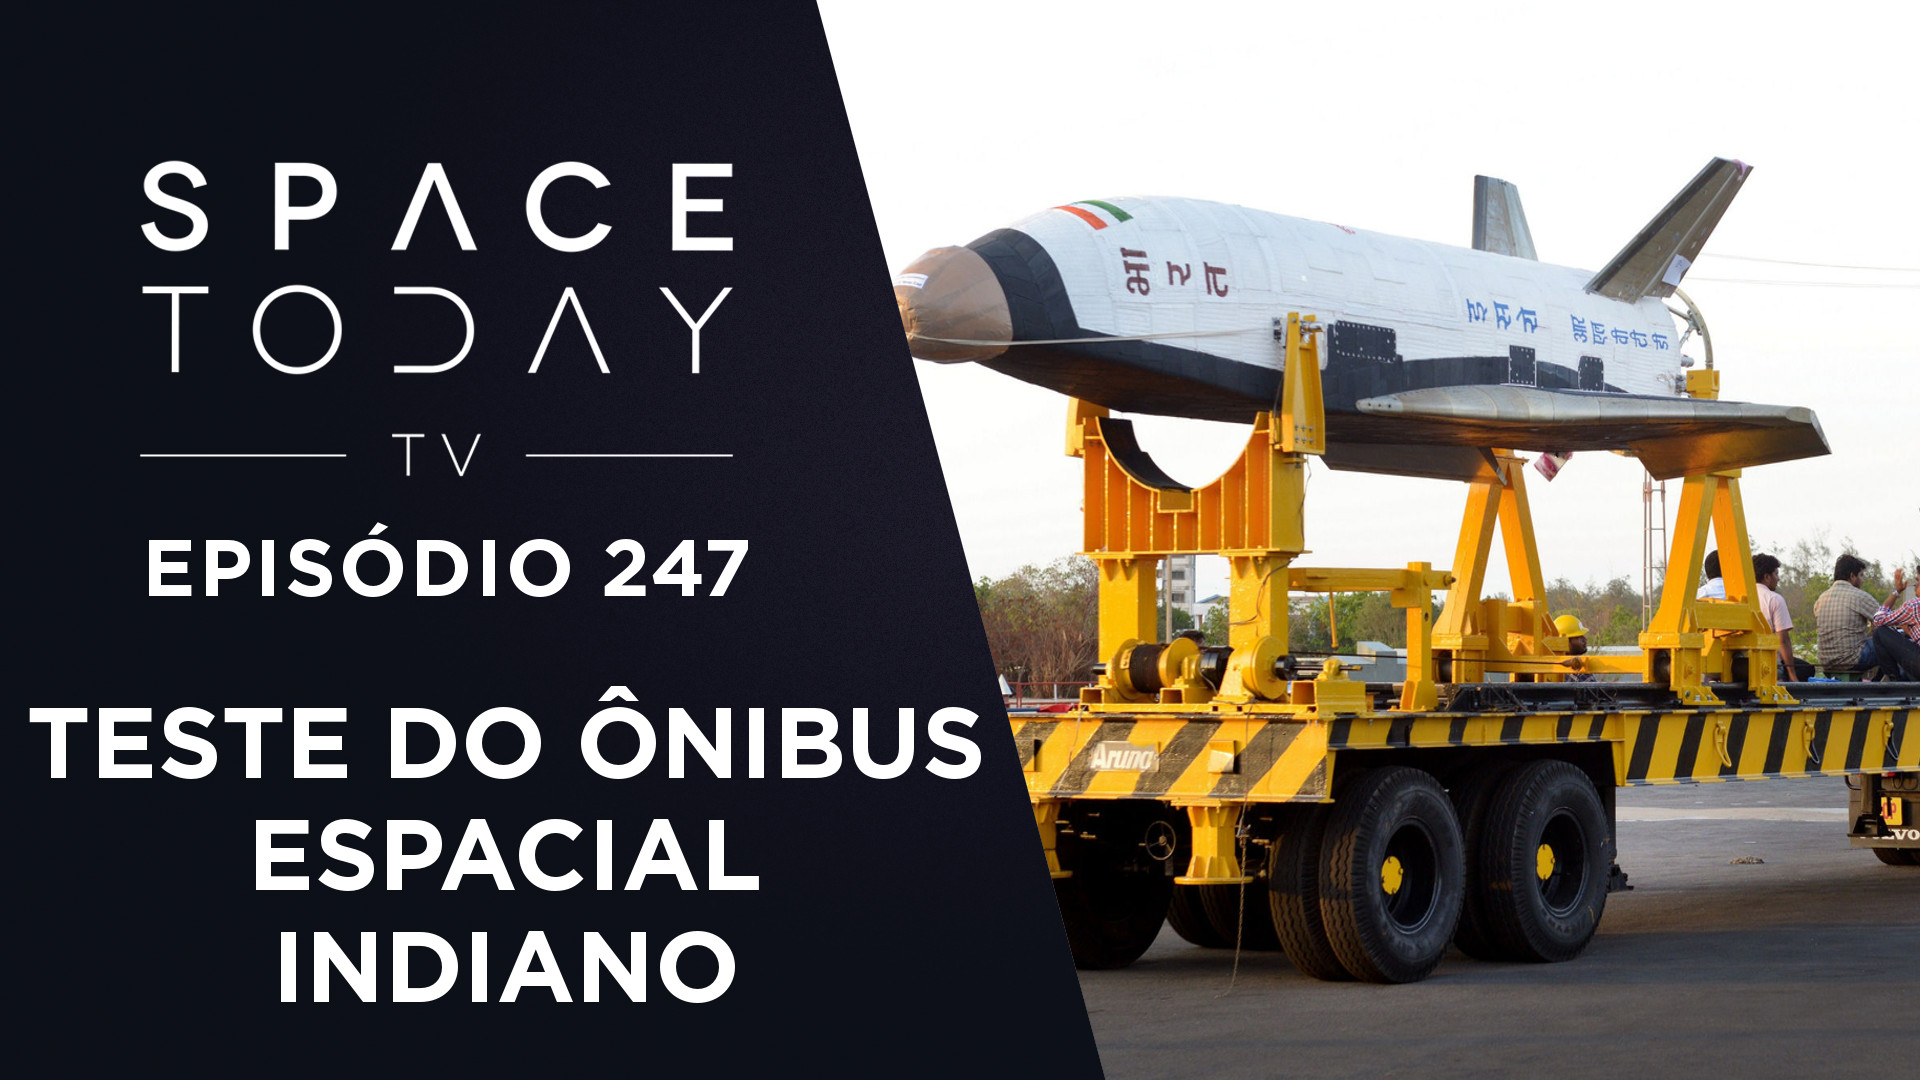 Voo de Teste do Ônibus Espacial Indiano – Space Today TV Ep.247